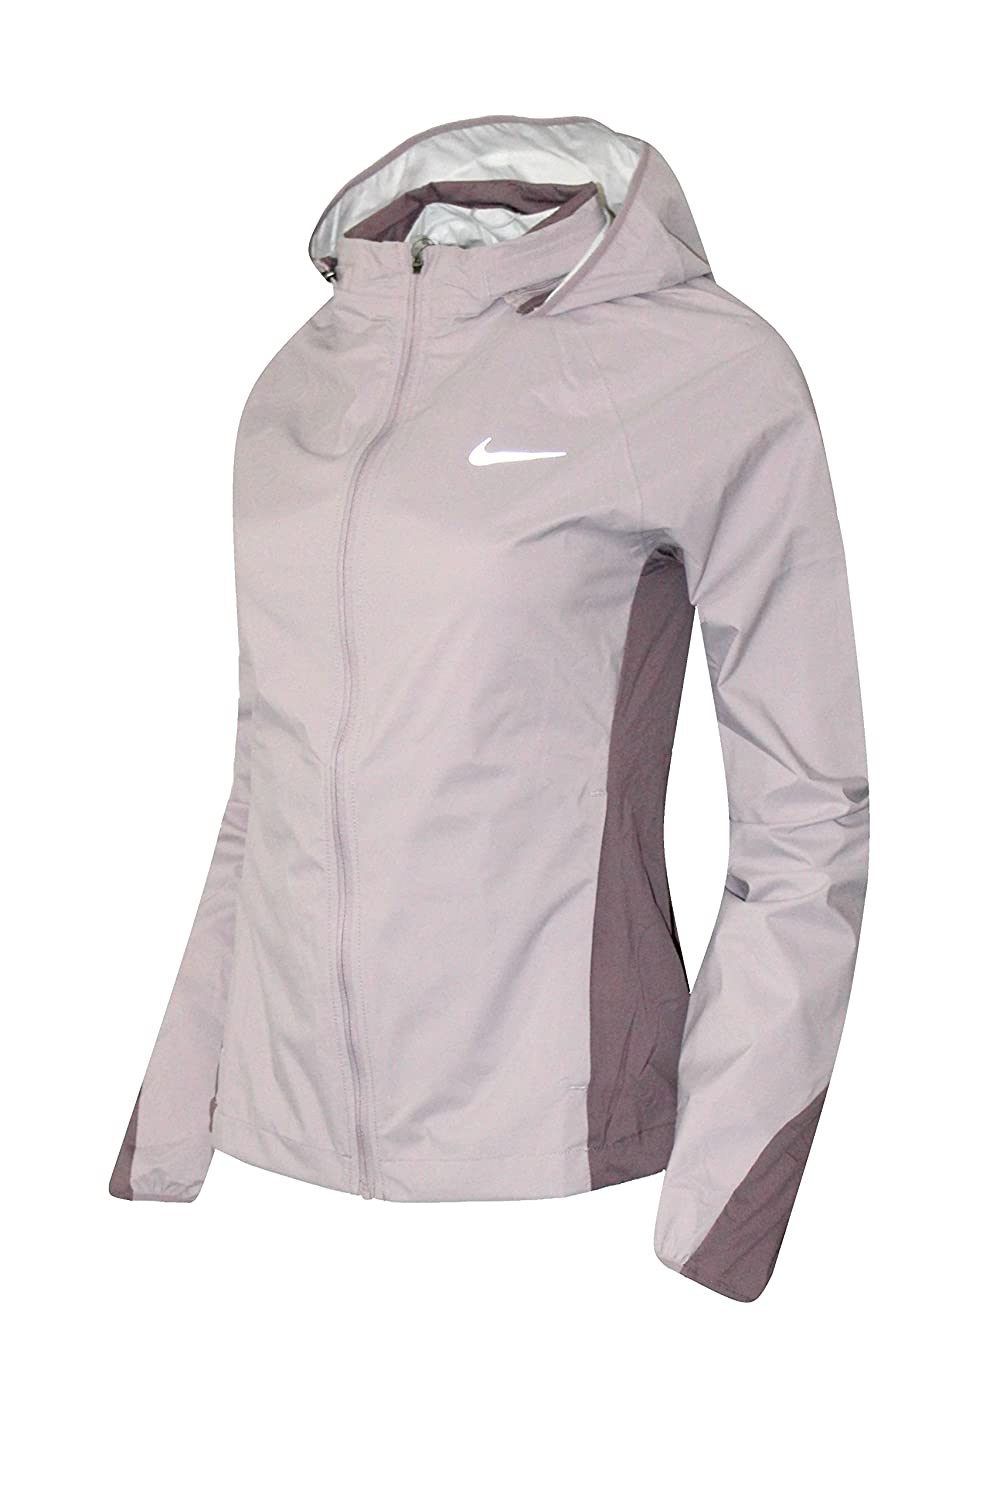 3df8d29711dd NIKE HyperShield Women s Running Jacket (XS)  Amazon.ca  Sports   Outdoors